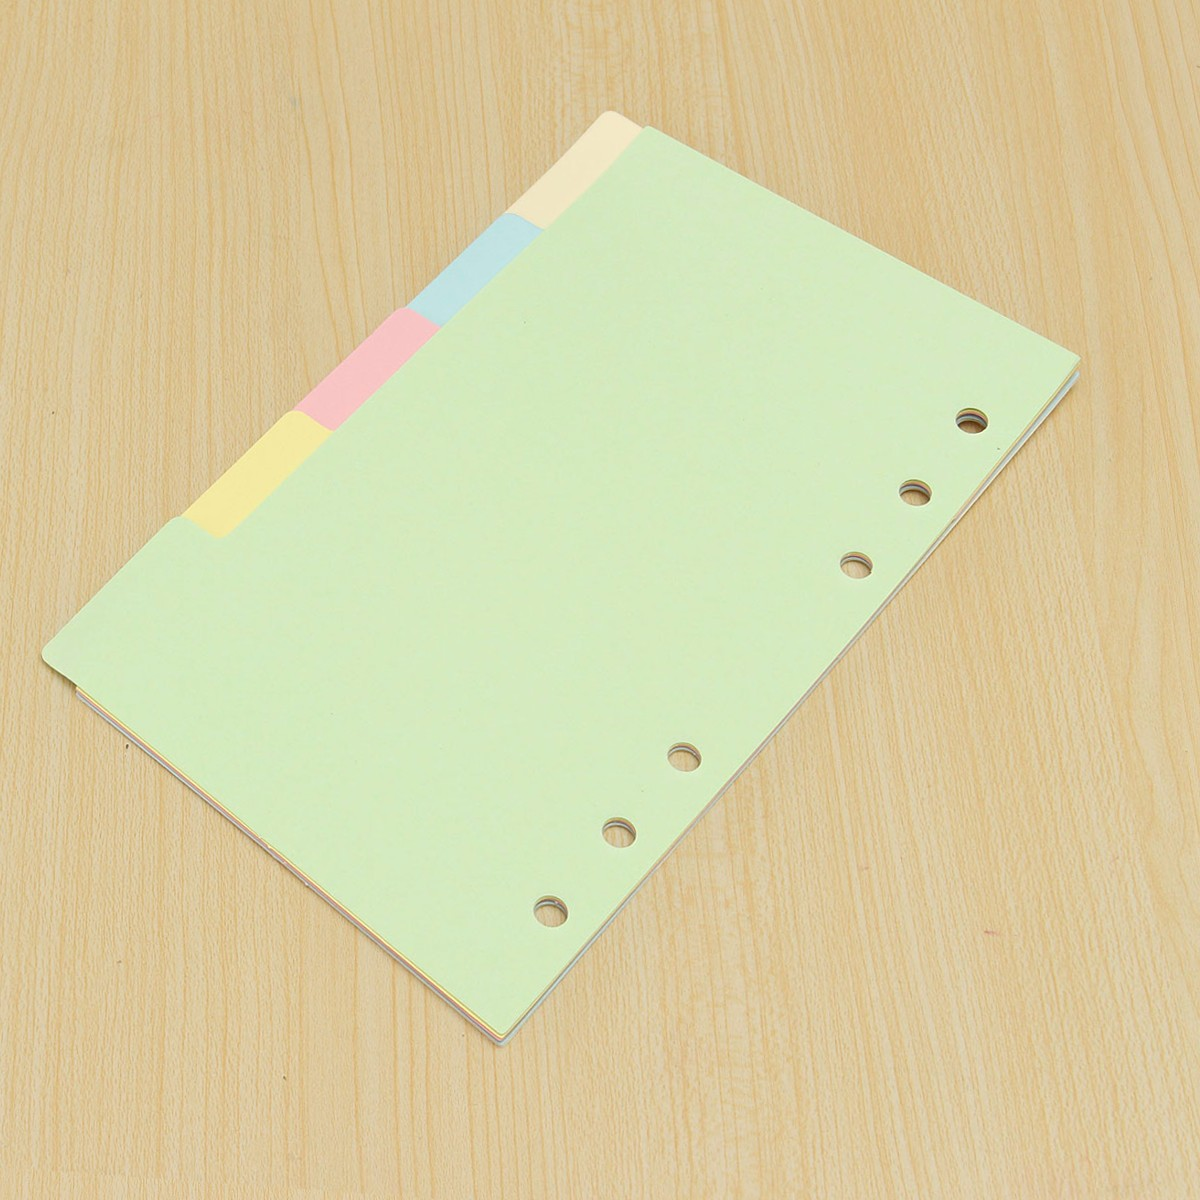 5Pcs A5/A6 Size Index Multicolored Tabs Divider Insert Refill Organiser Note Paper